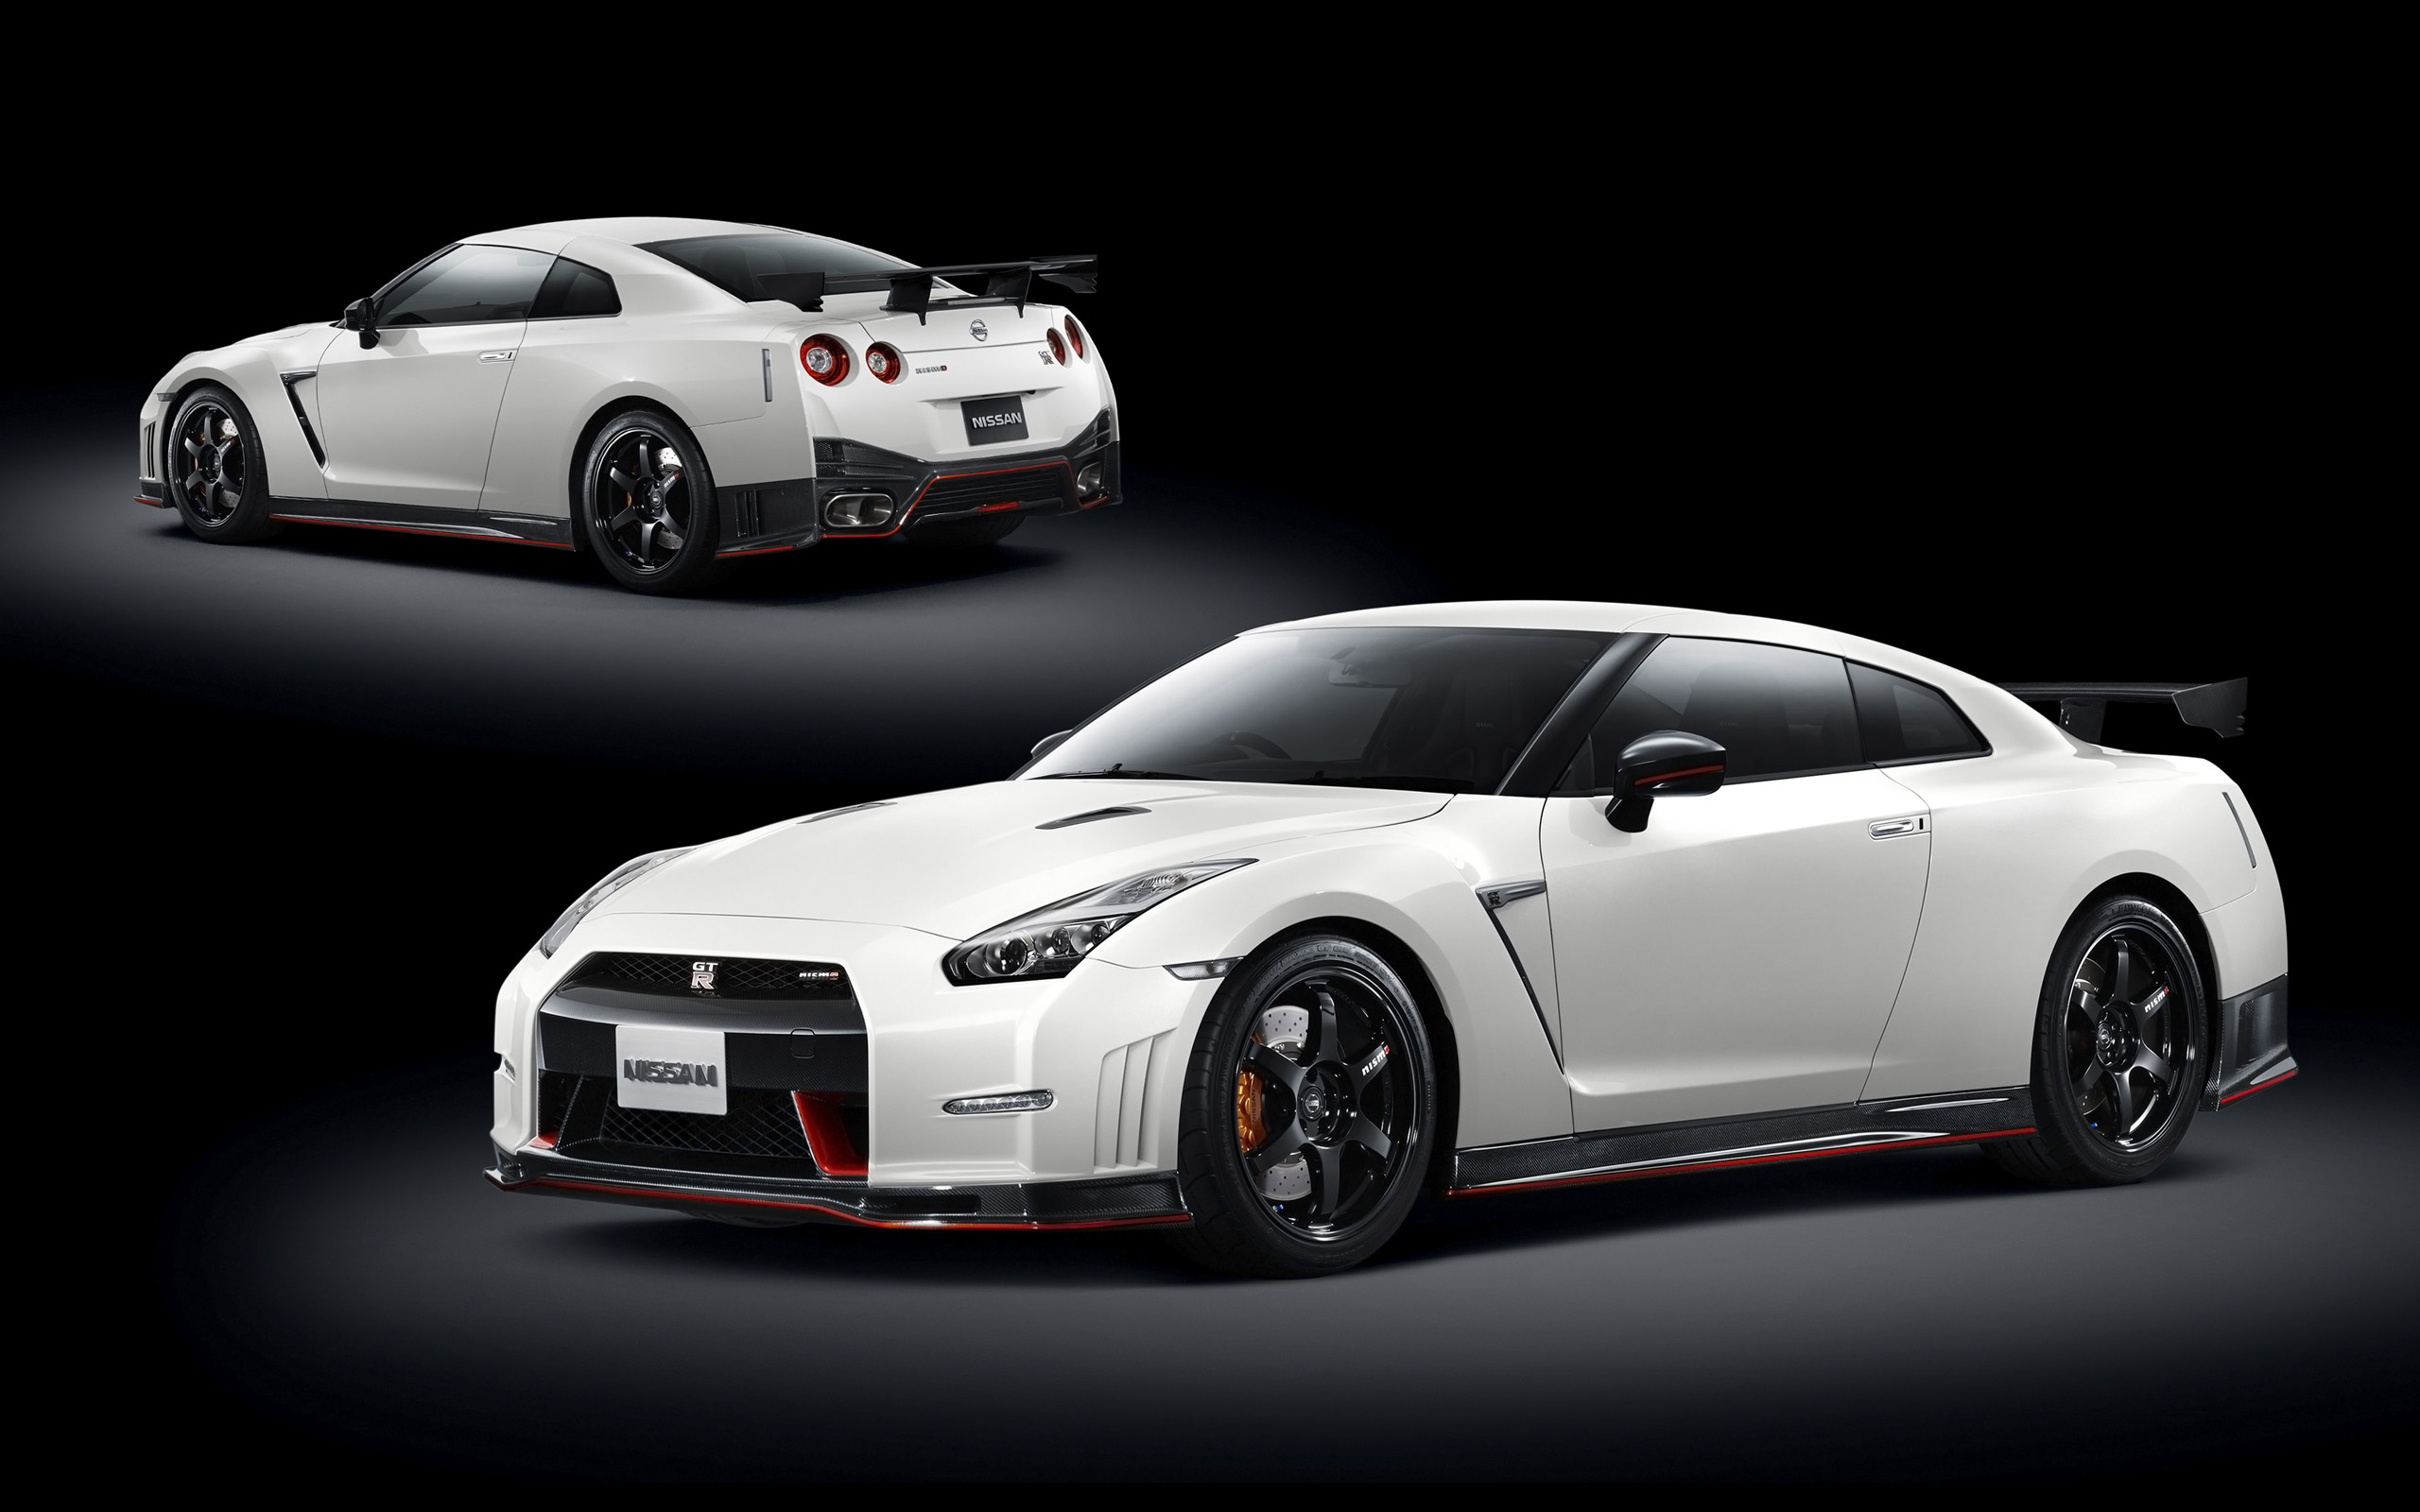 2015 nissan gt r nismo wallpaper hd car wallpapers id 3926. Black Bedroom Furniture Sets. Home Design Ideas